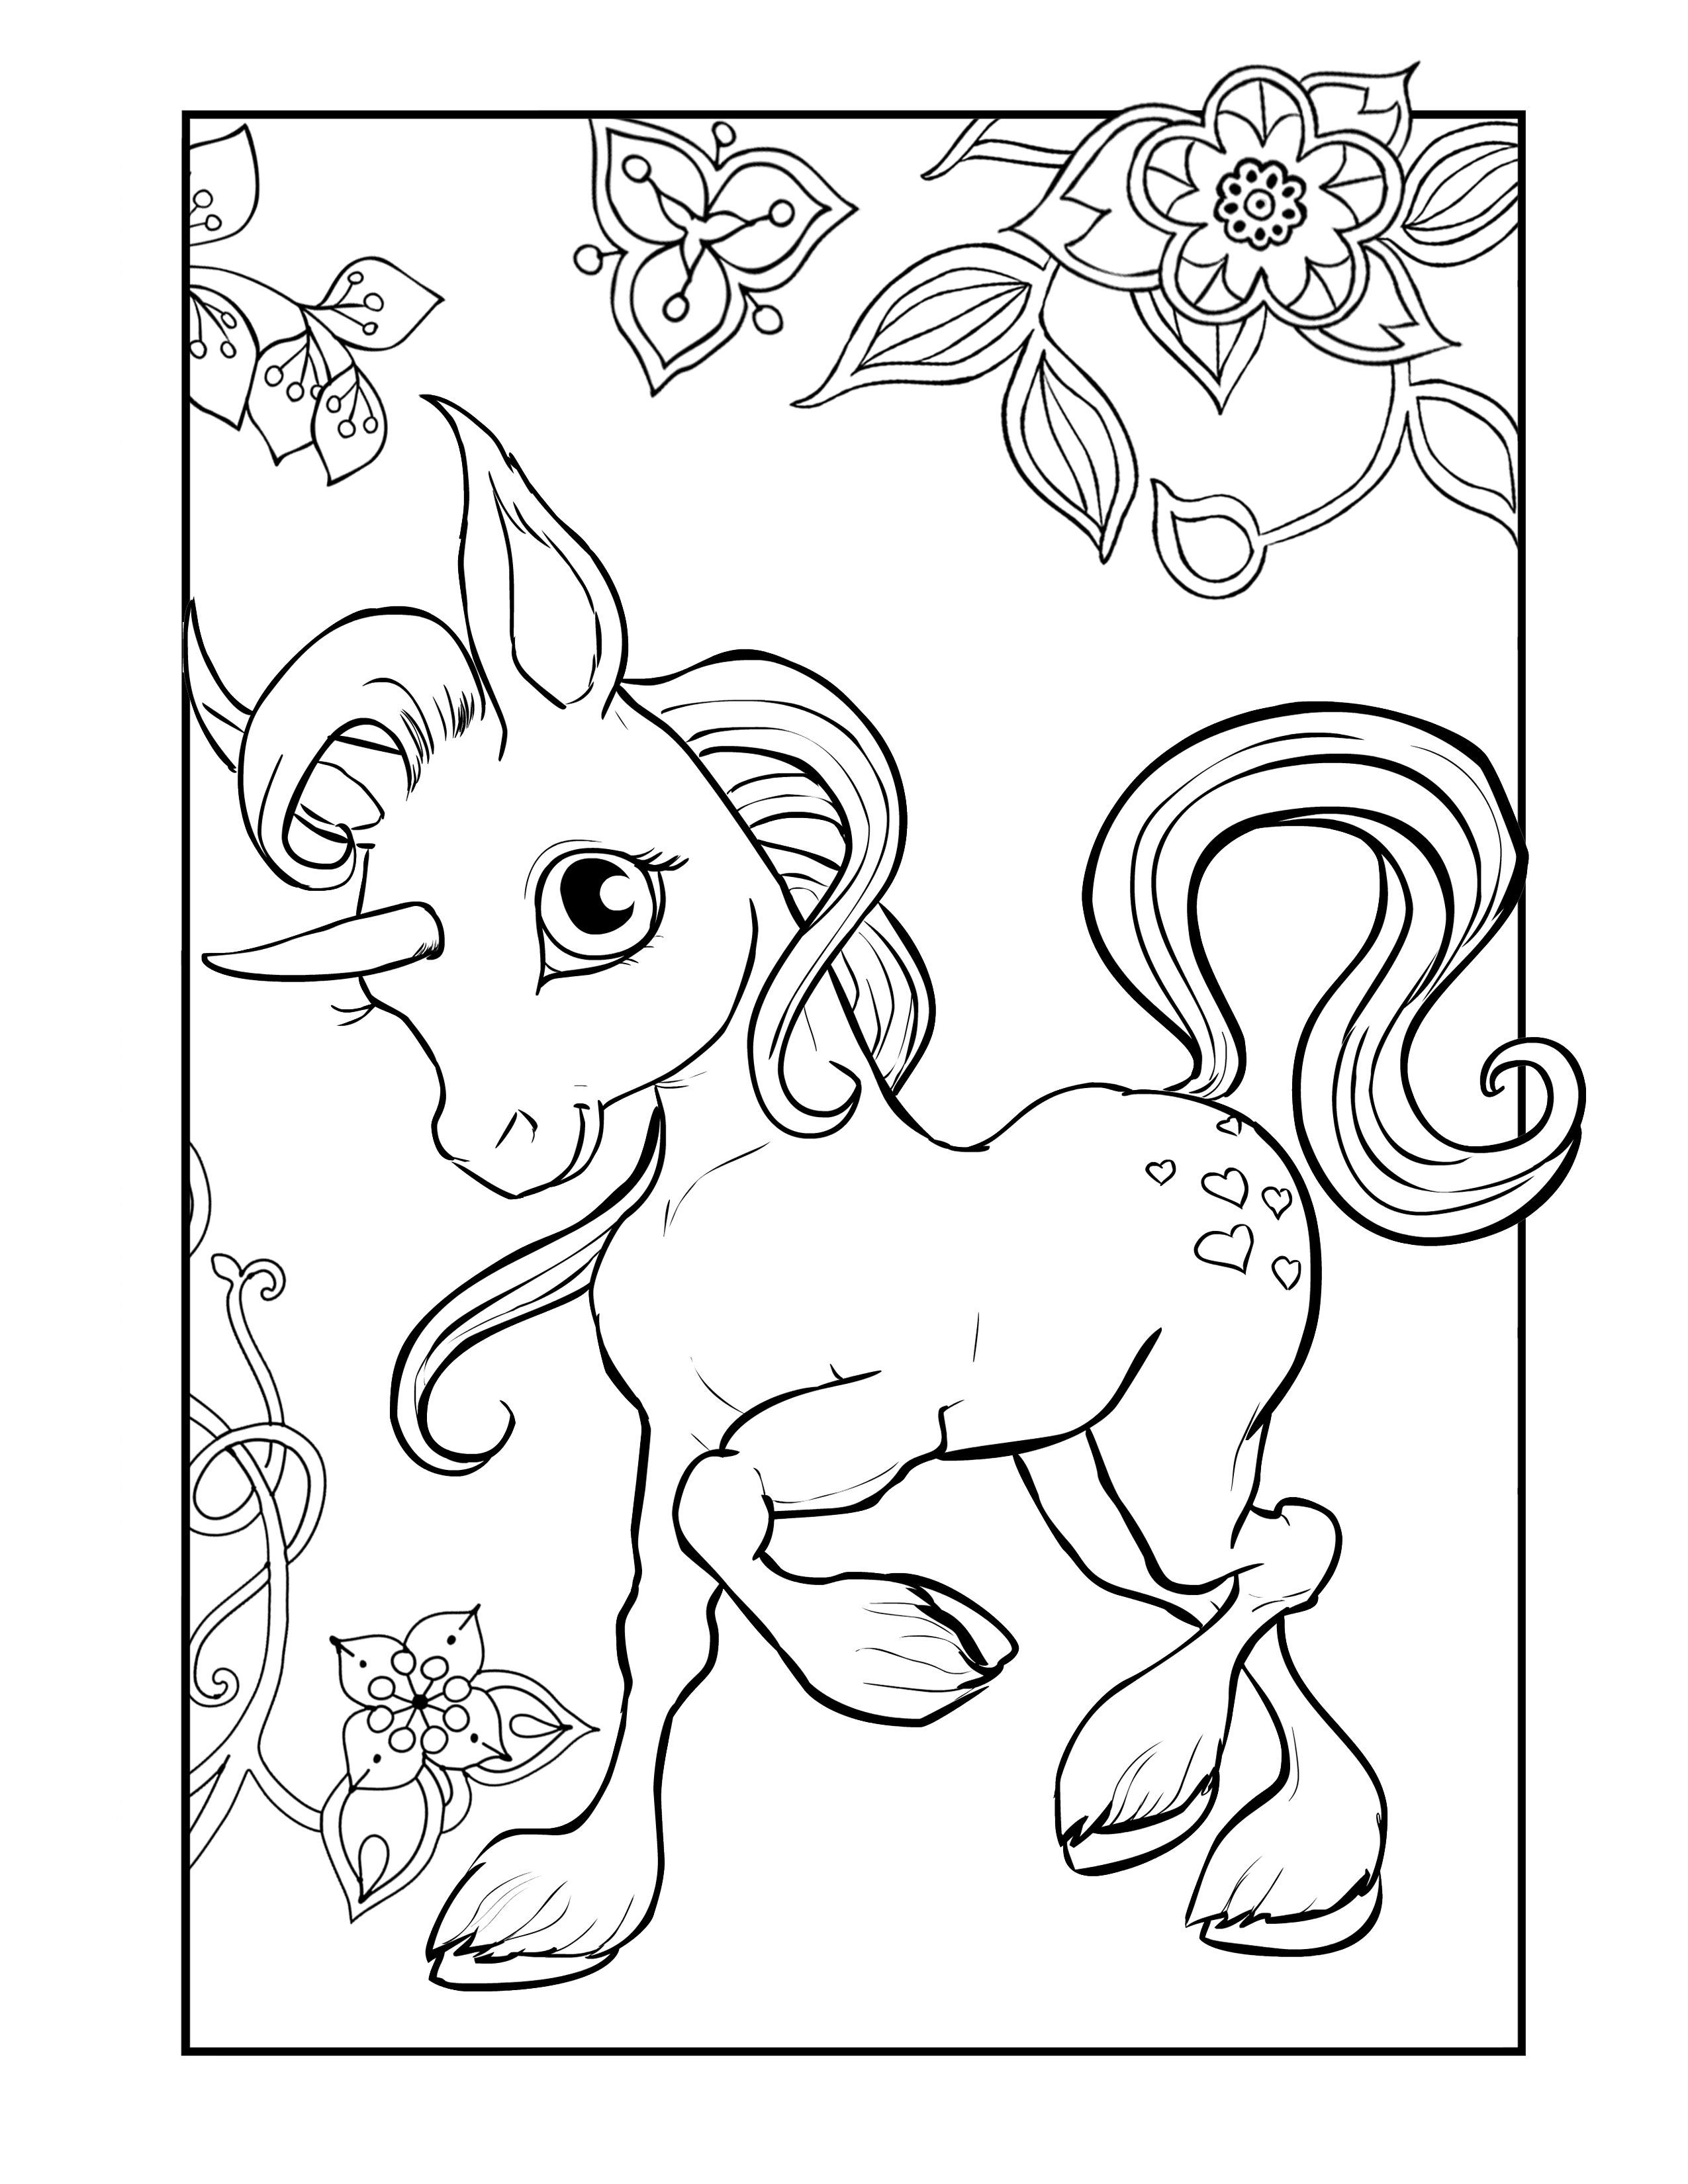 Unicorn Coloring Download Downloadable Unicorn Coloring Pages Unicorn Coloring Boo Unicorn Coloring Pages Princess Coloring Pages Hello Kitty Colouring Pages